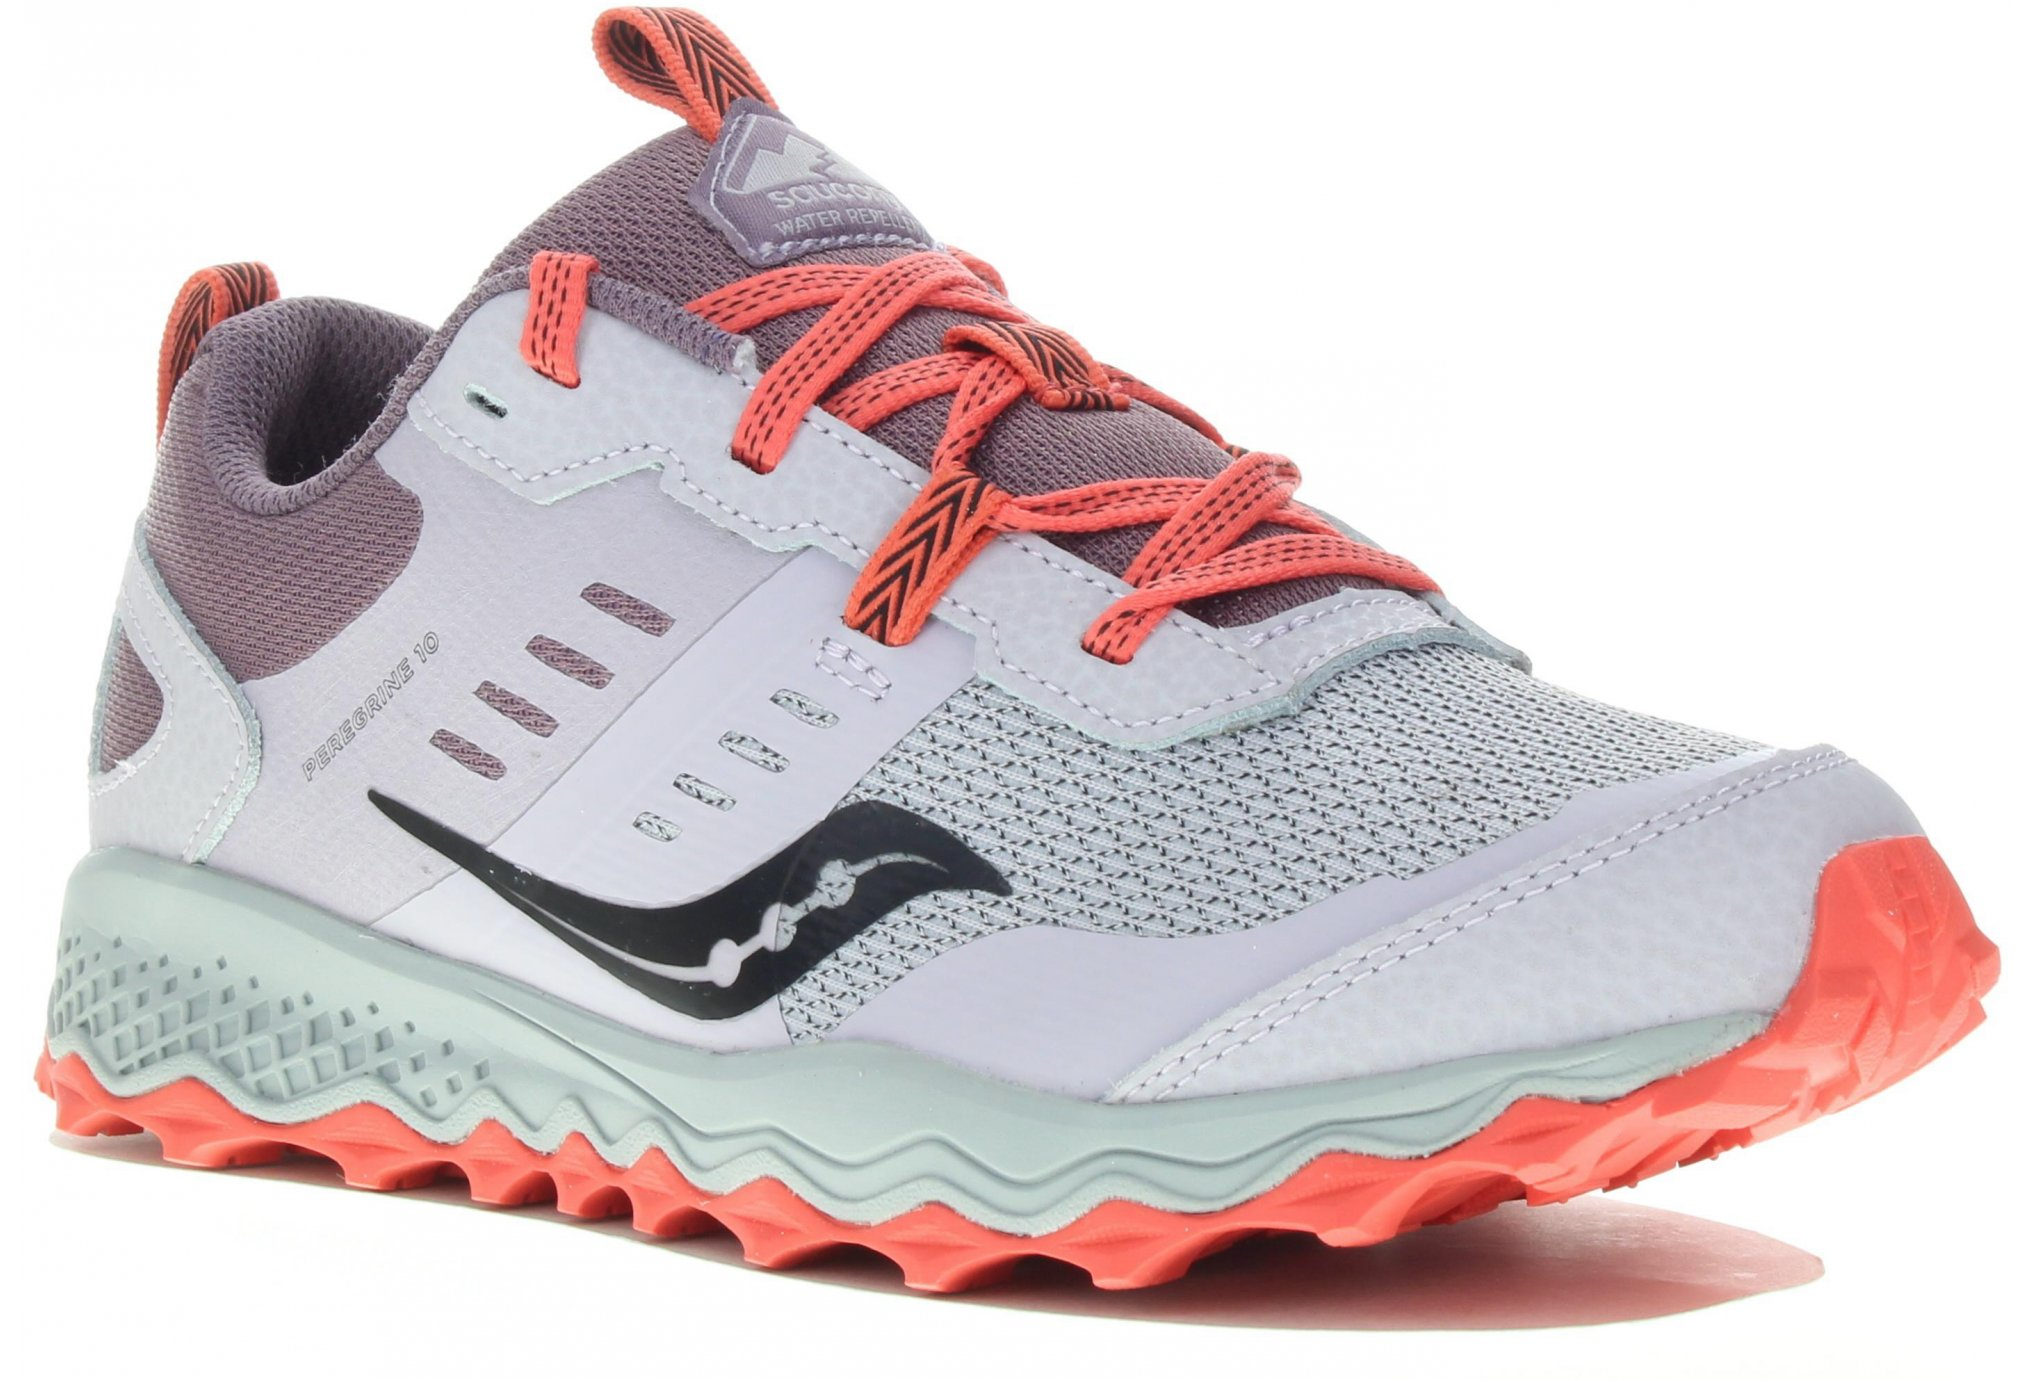 Saucony S-Peregrine 10 Shield Chaussures running femme